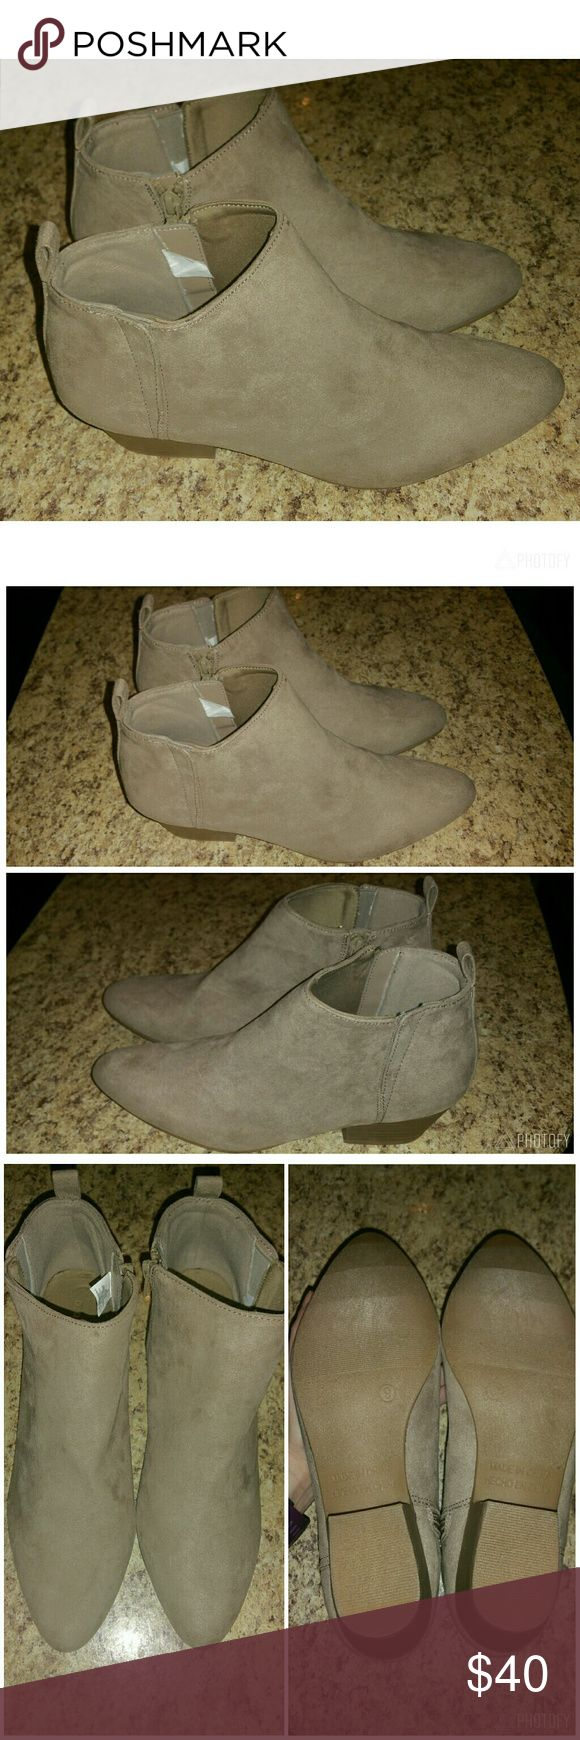 👢 Cute Old Navy Taupe Beige Ankle Booties Boots 9 -Brand: Old Navy  -Style: Ankle length boots with side-zip closure  -Color: Taupe  -Size: Women's 9 -Material: Faux Suede  -Pointed toe  -Sueded lining and cushioned footbed  -Flocked rubber outsole  -Condition: New Without Tags Old Navy Shoes Ankle Boots & Booties